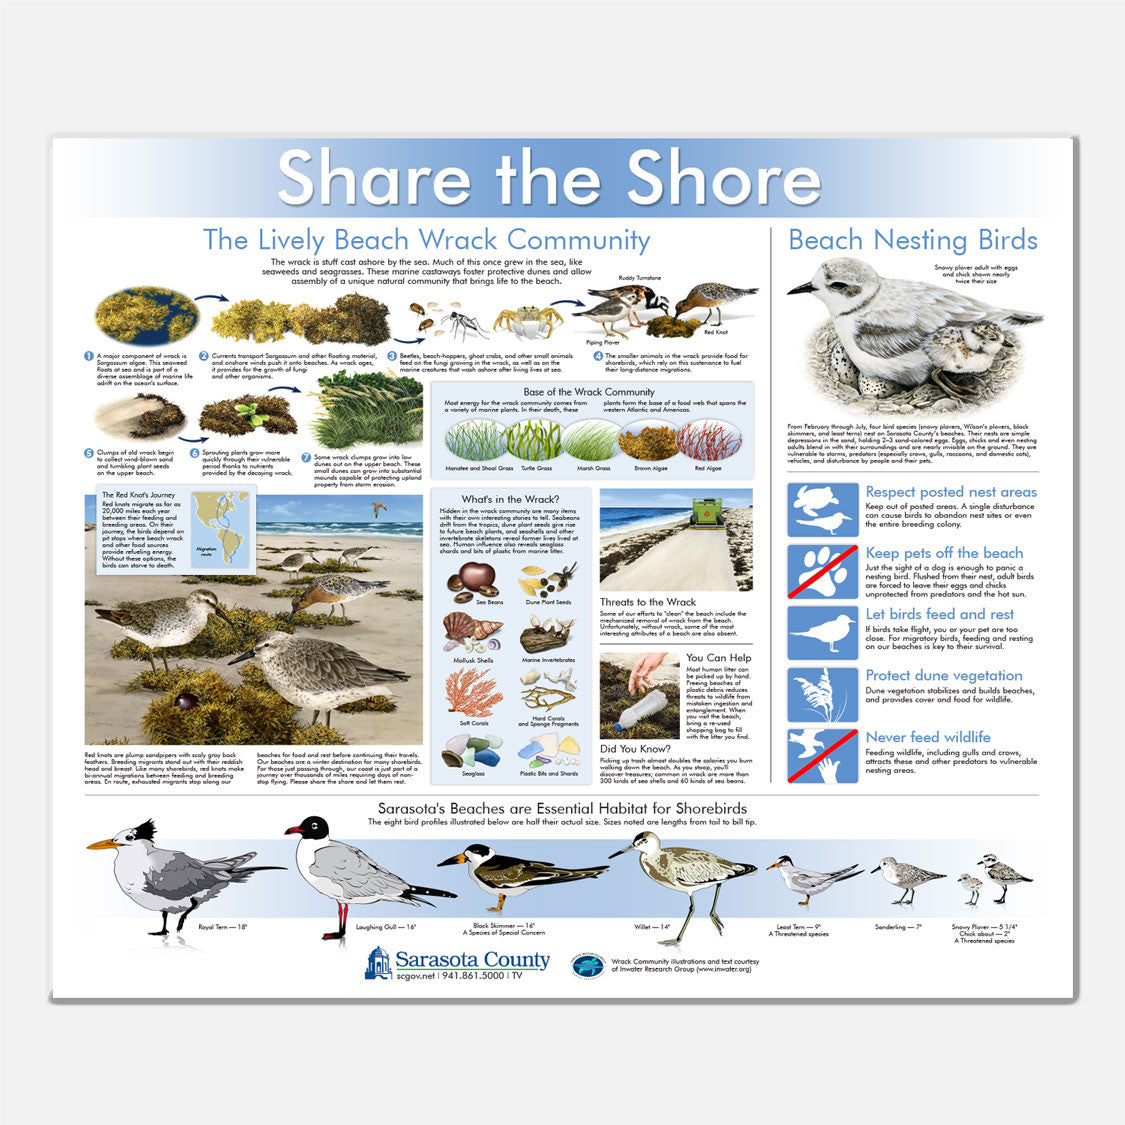 This beautifully illustrated informational/identification display emphasizes beach wrack and its connection to Florida shorebirds.